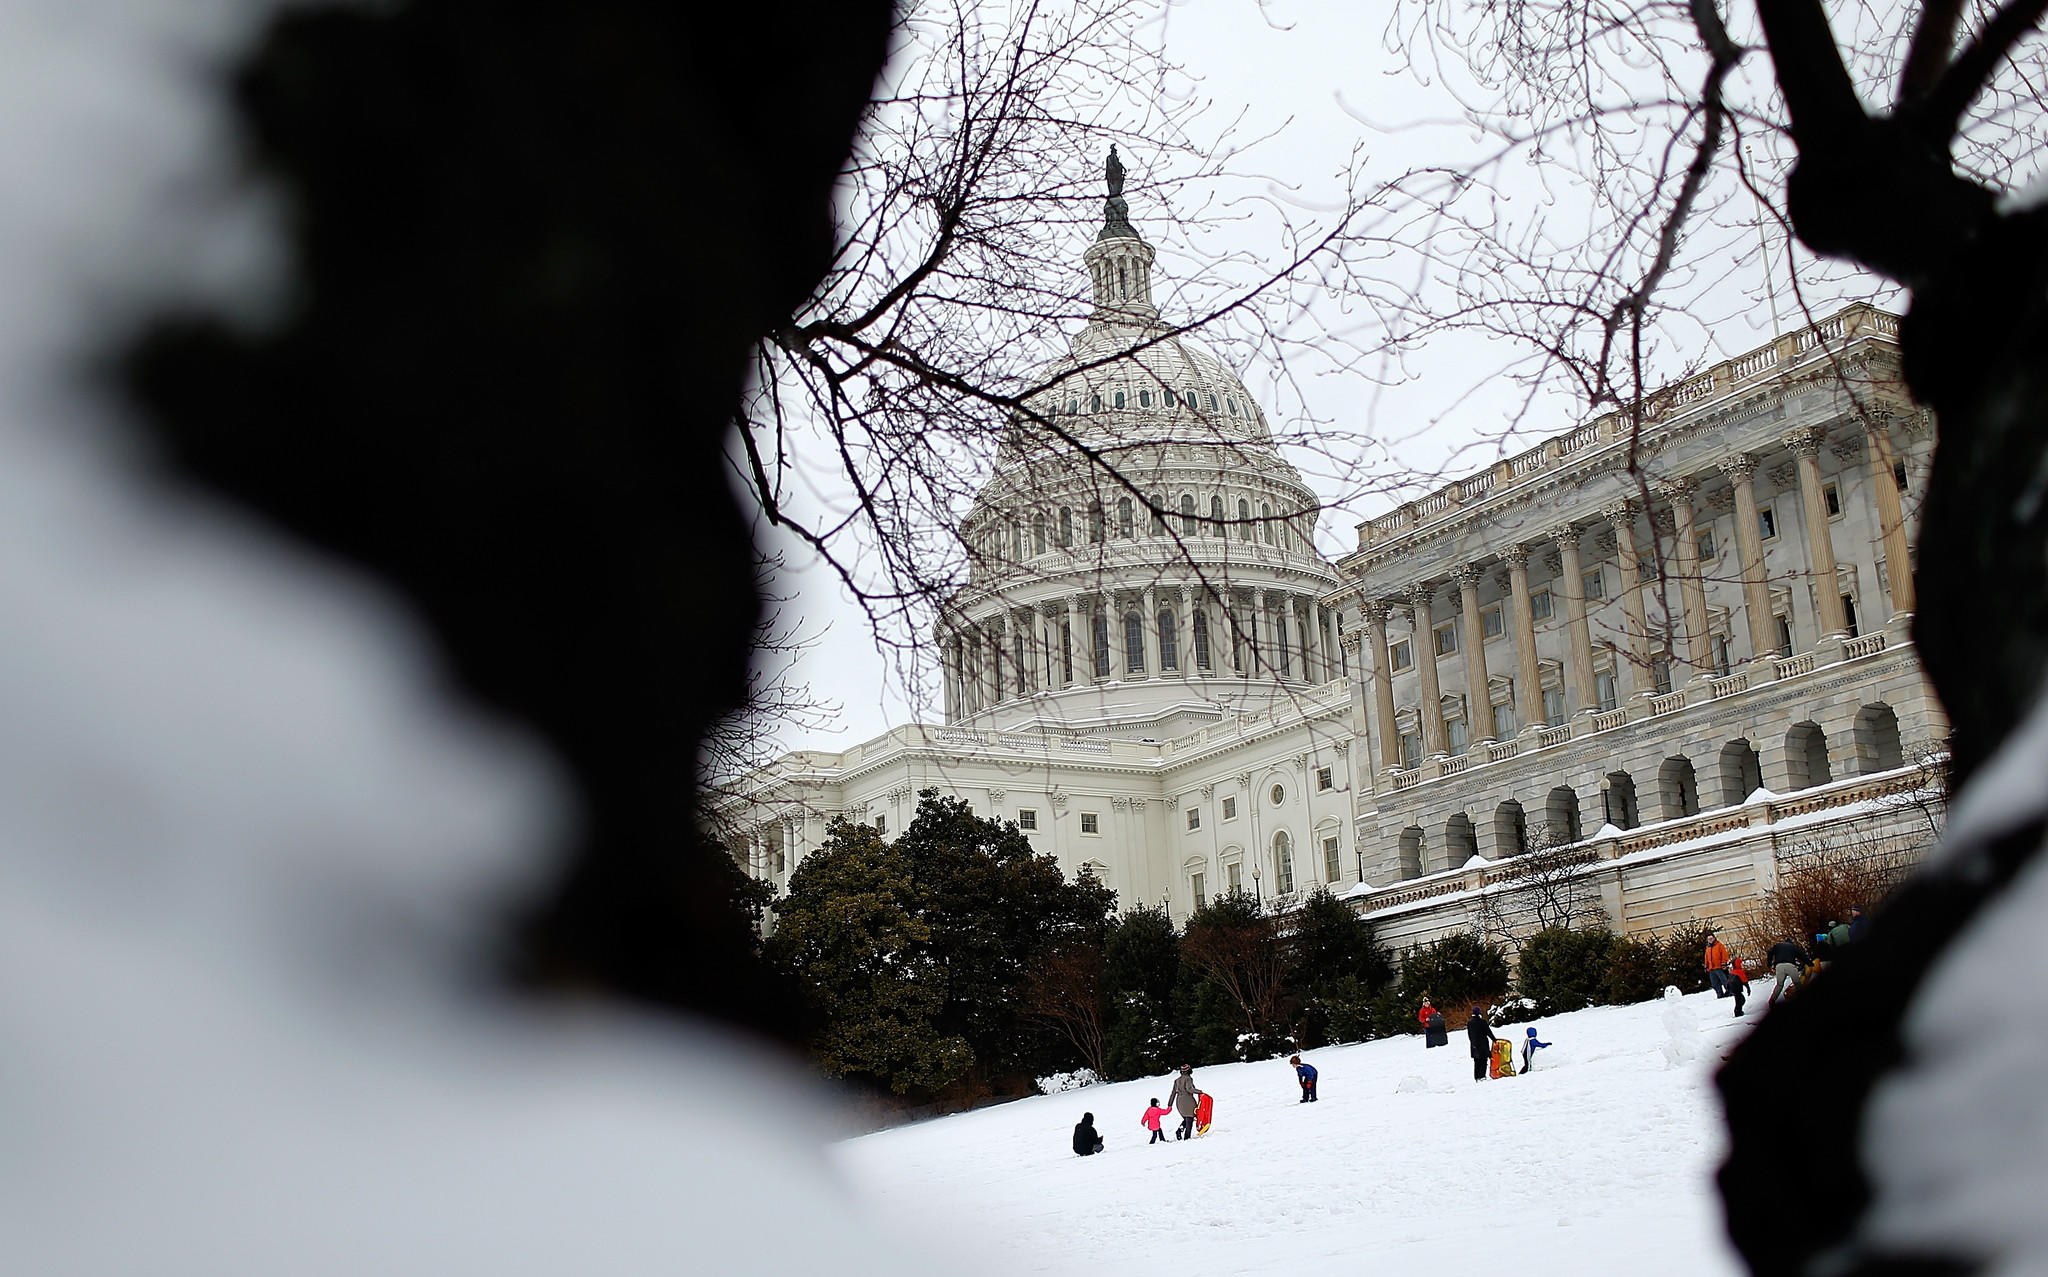 People sled on the west lawn of the U.S. Capitol.